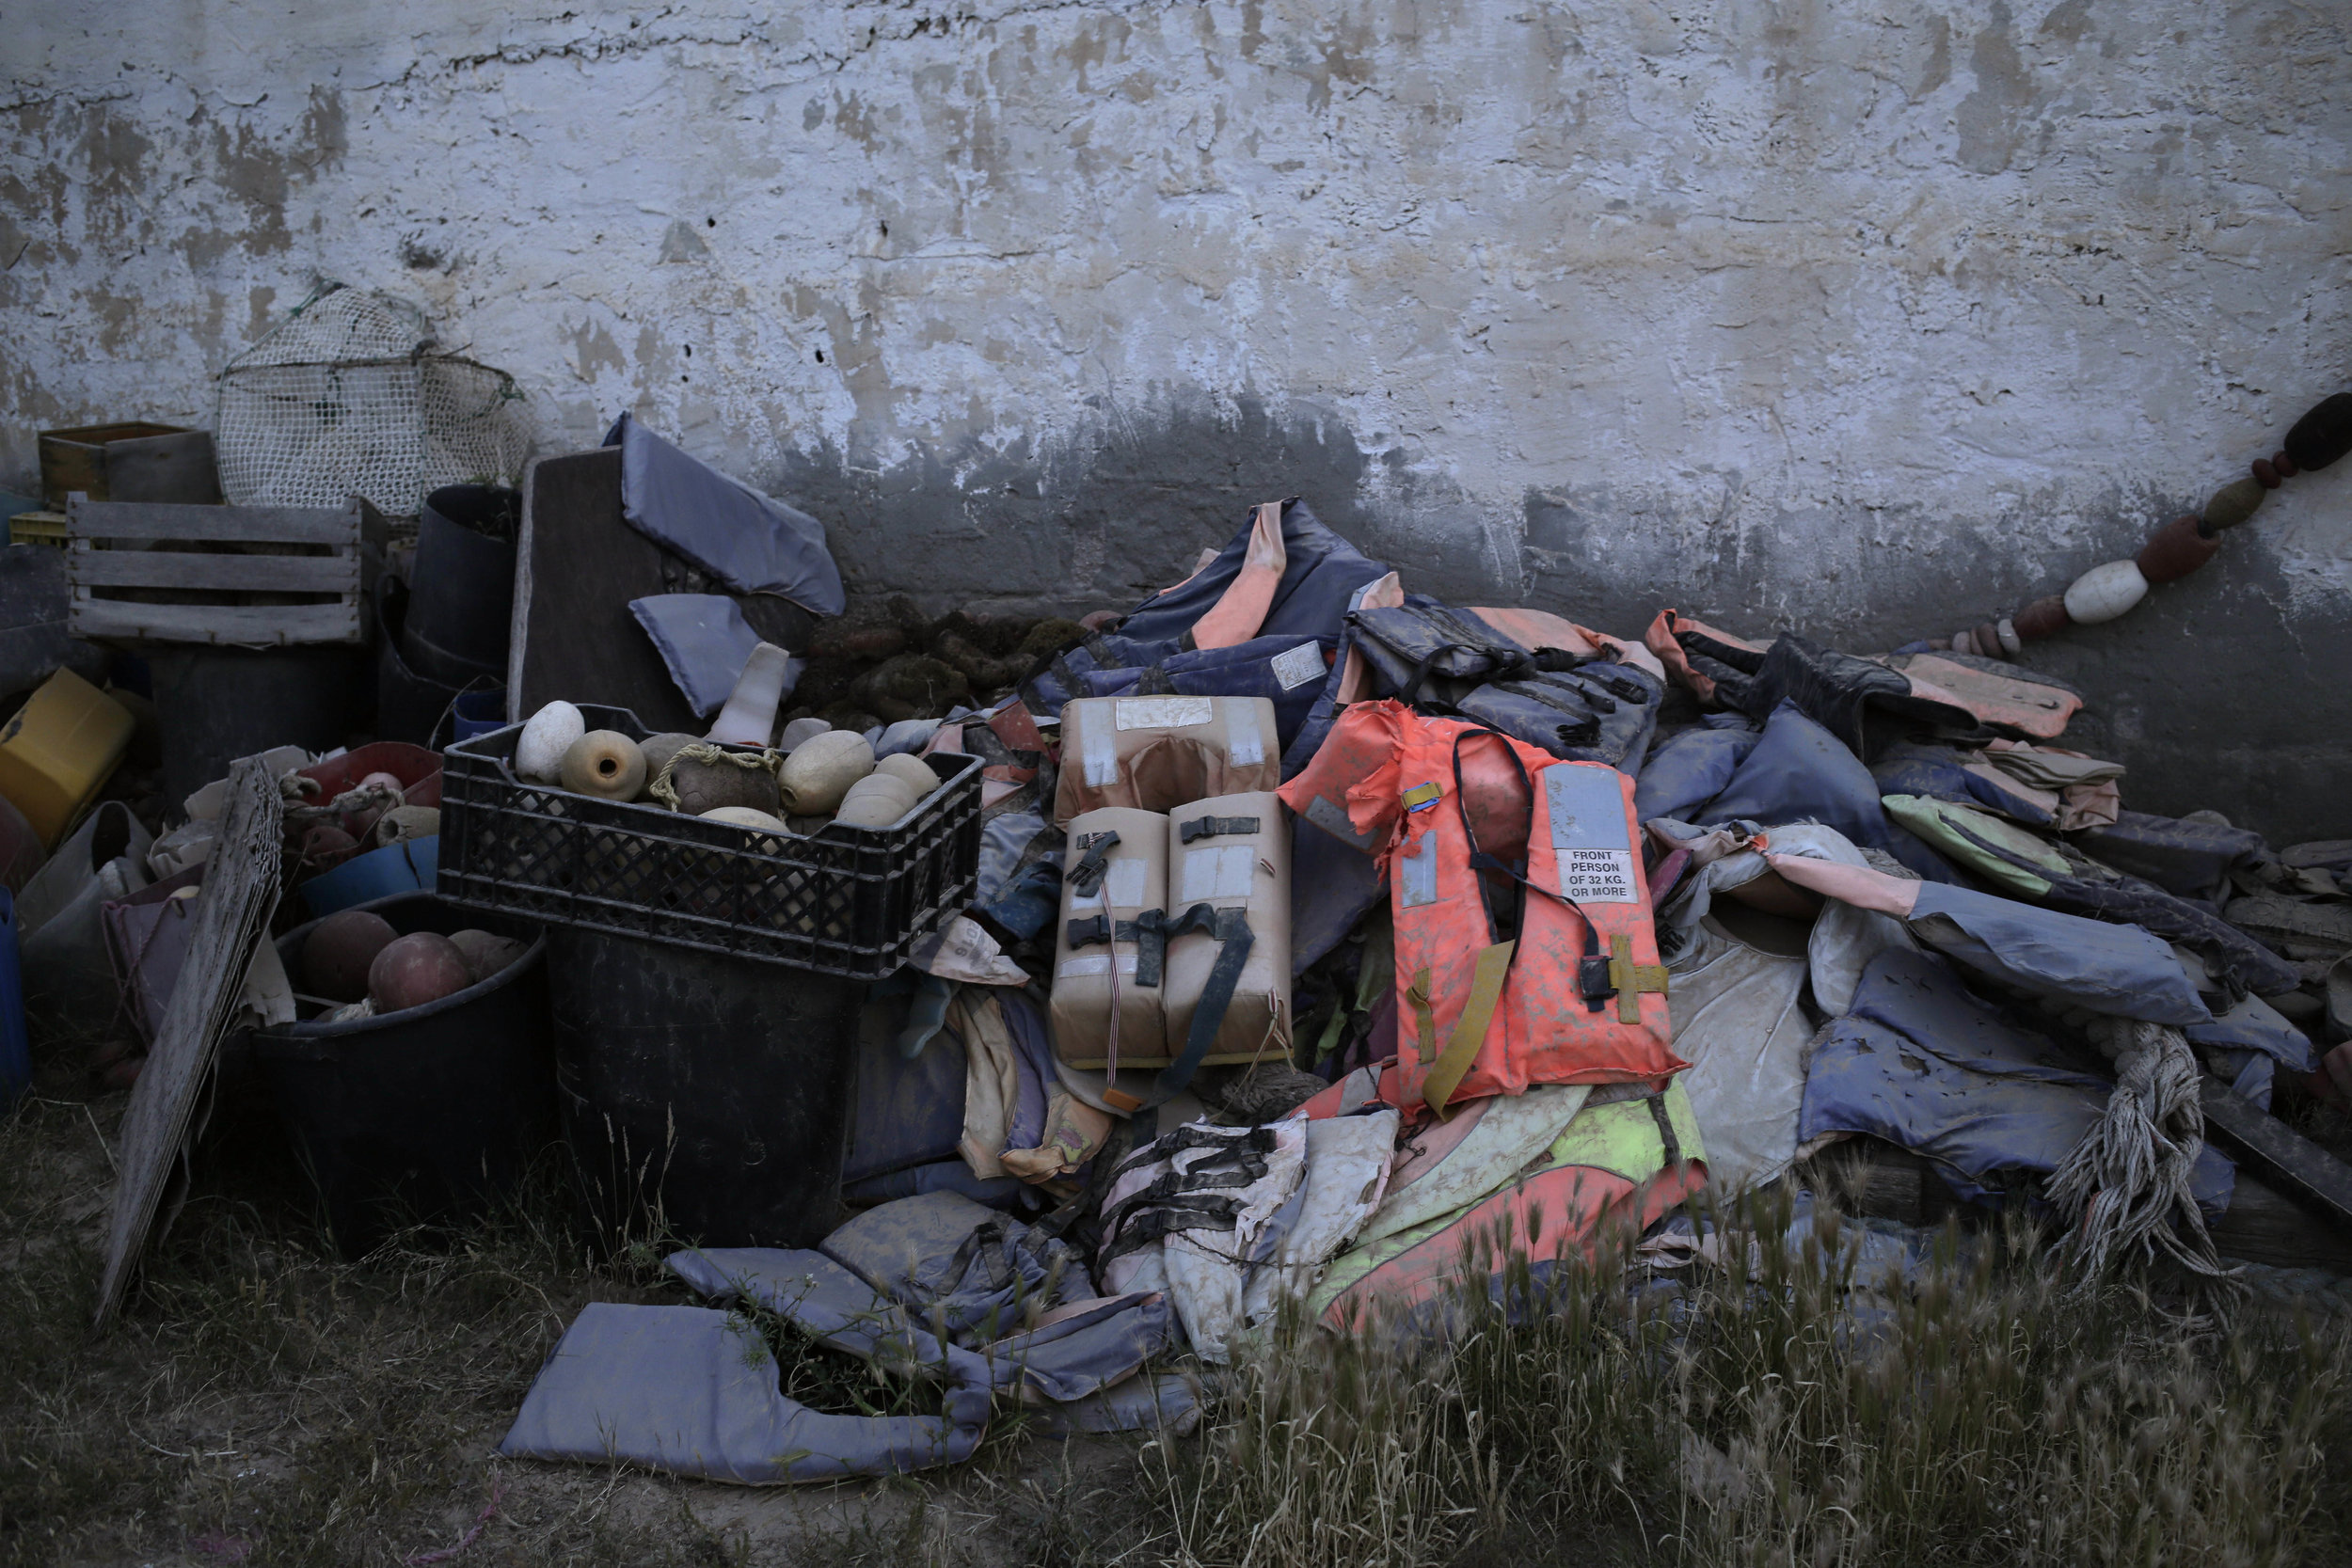 This Sunday, April 15, 2018 photo shows migrants' belongings that were collected by artist Mohsen Lahzib at his space, in the southern port town of Zarzis, Tunisia. (AP Photo/Nariman El-Mofty)